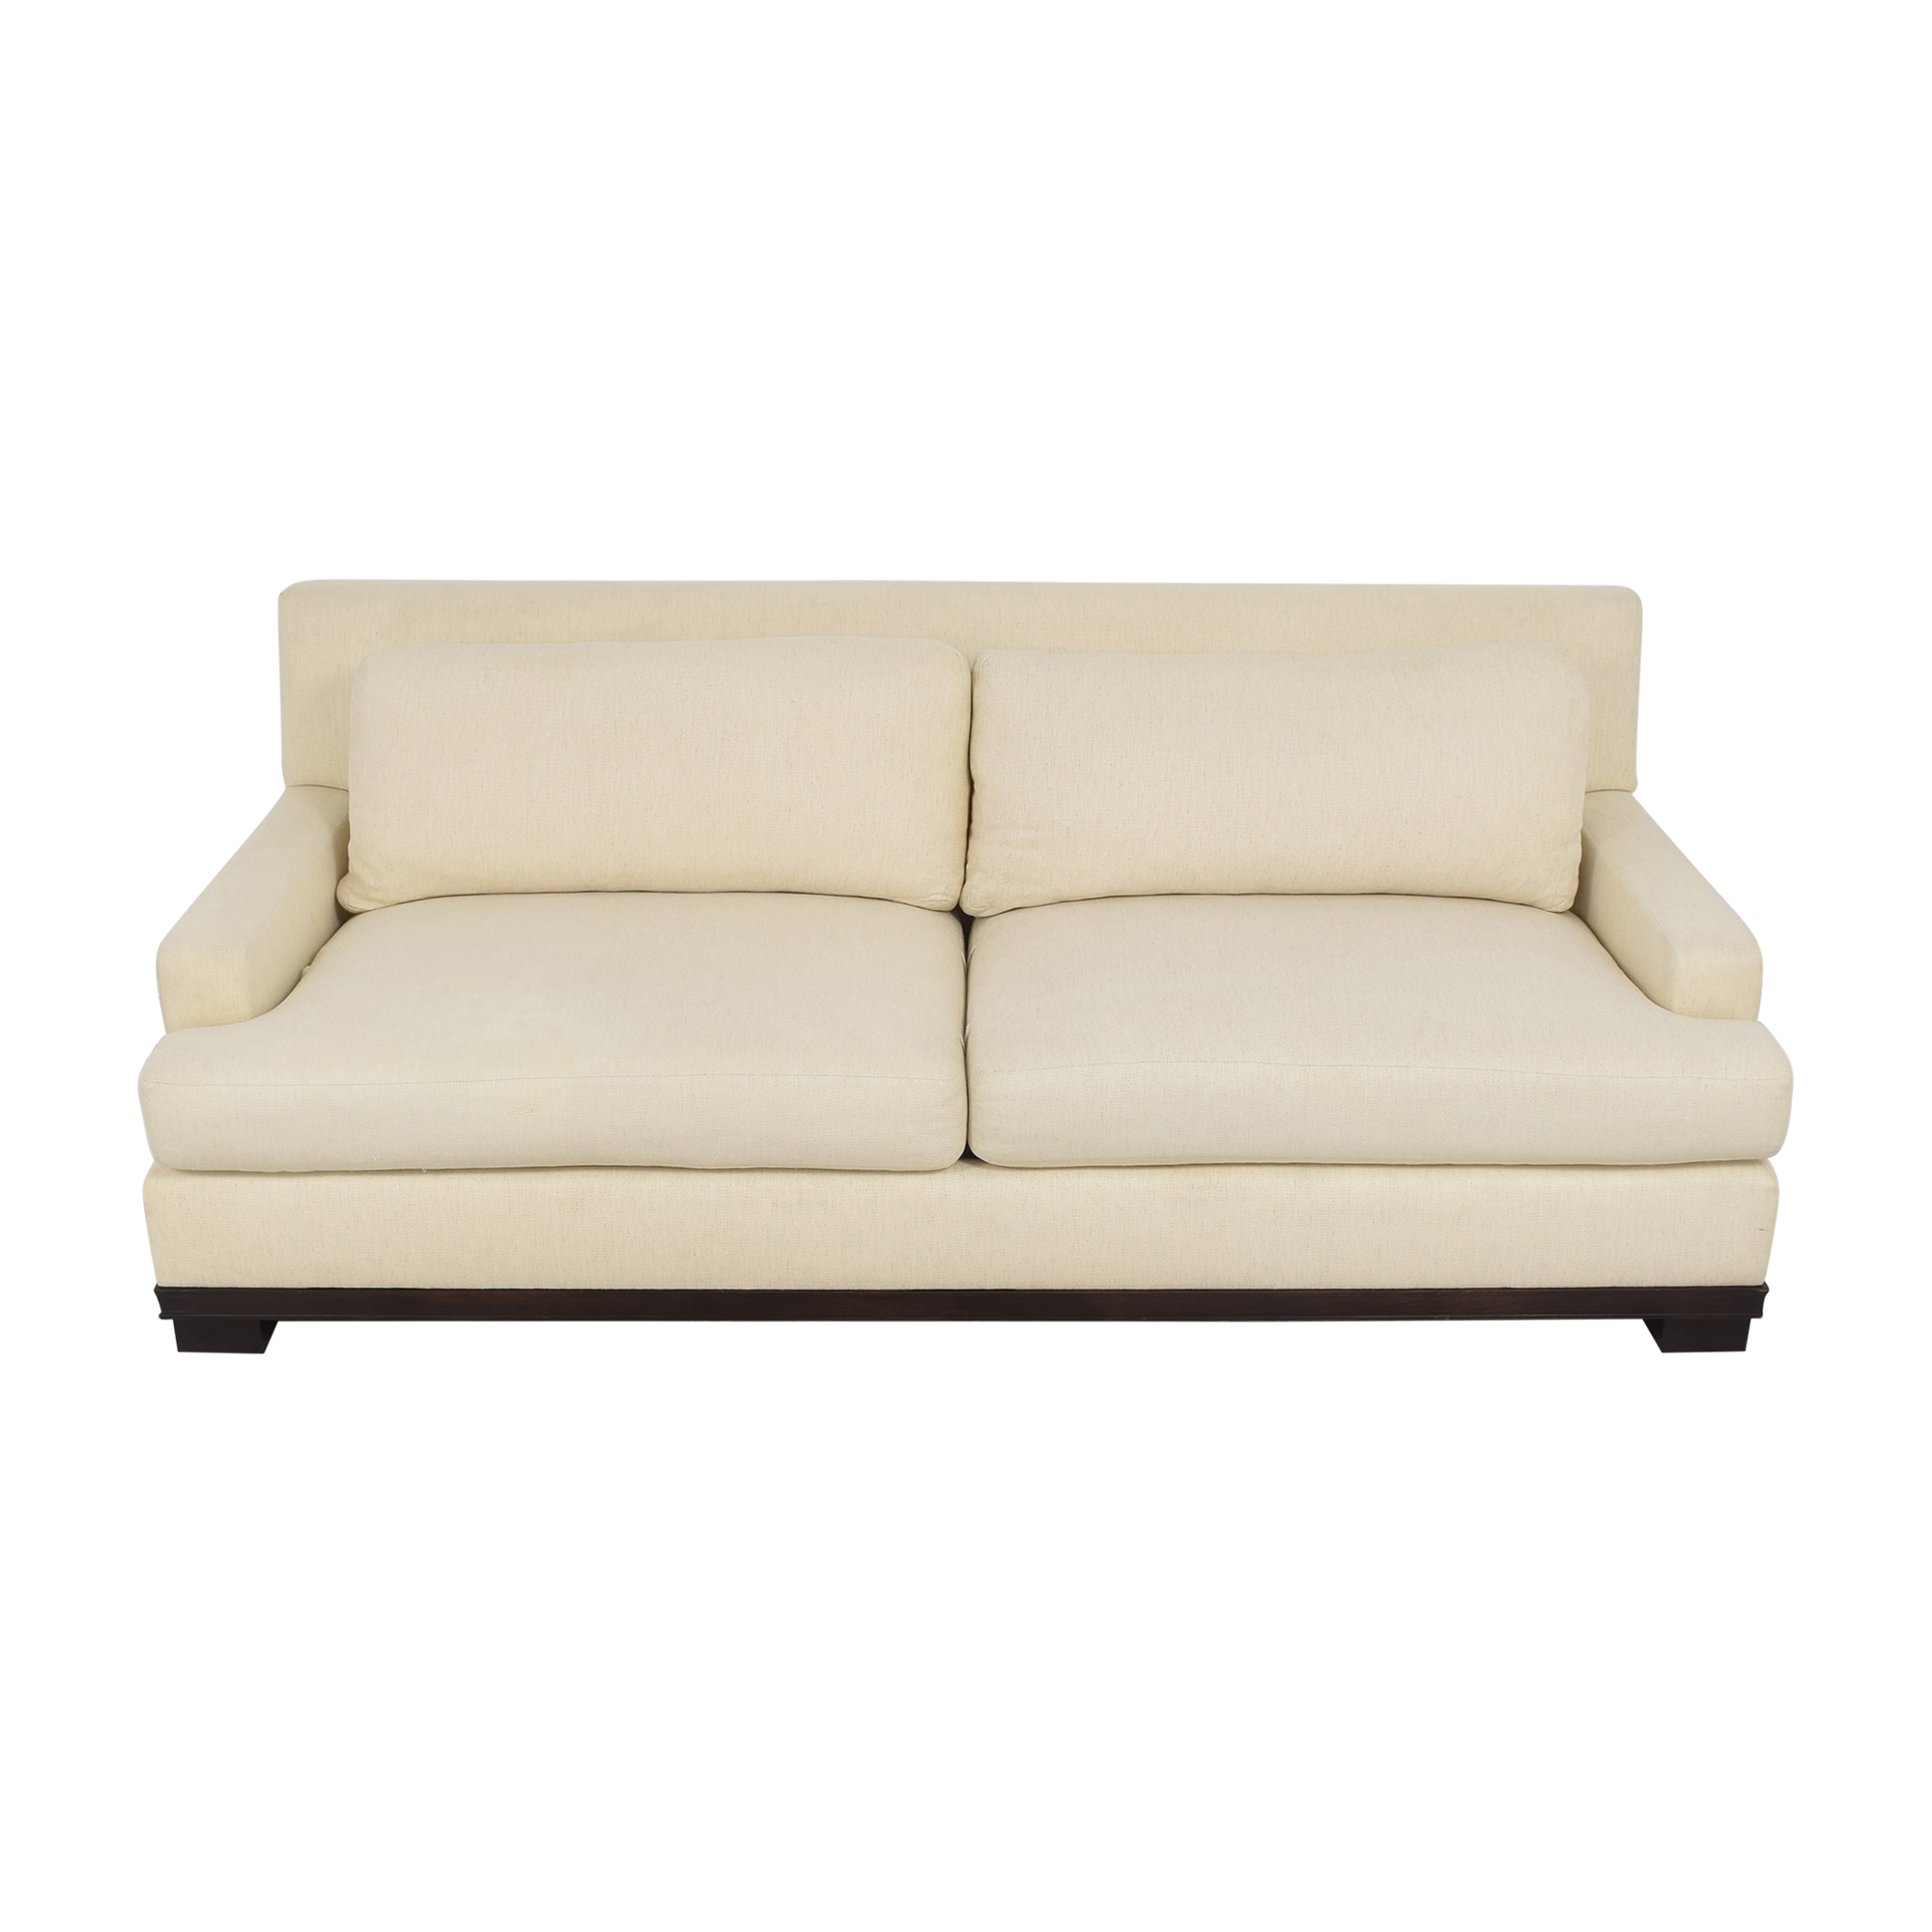 shop Bloomingdale's by Barbara Barry Oval Collection Sofa Bloomingdale's Classic Sofas